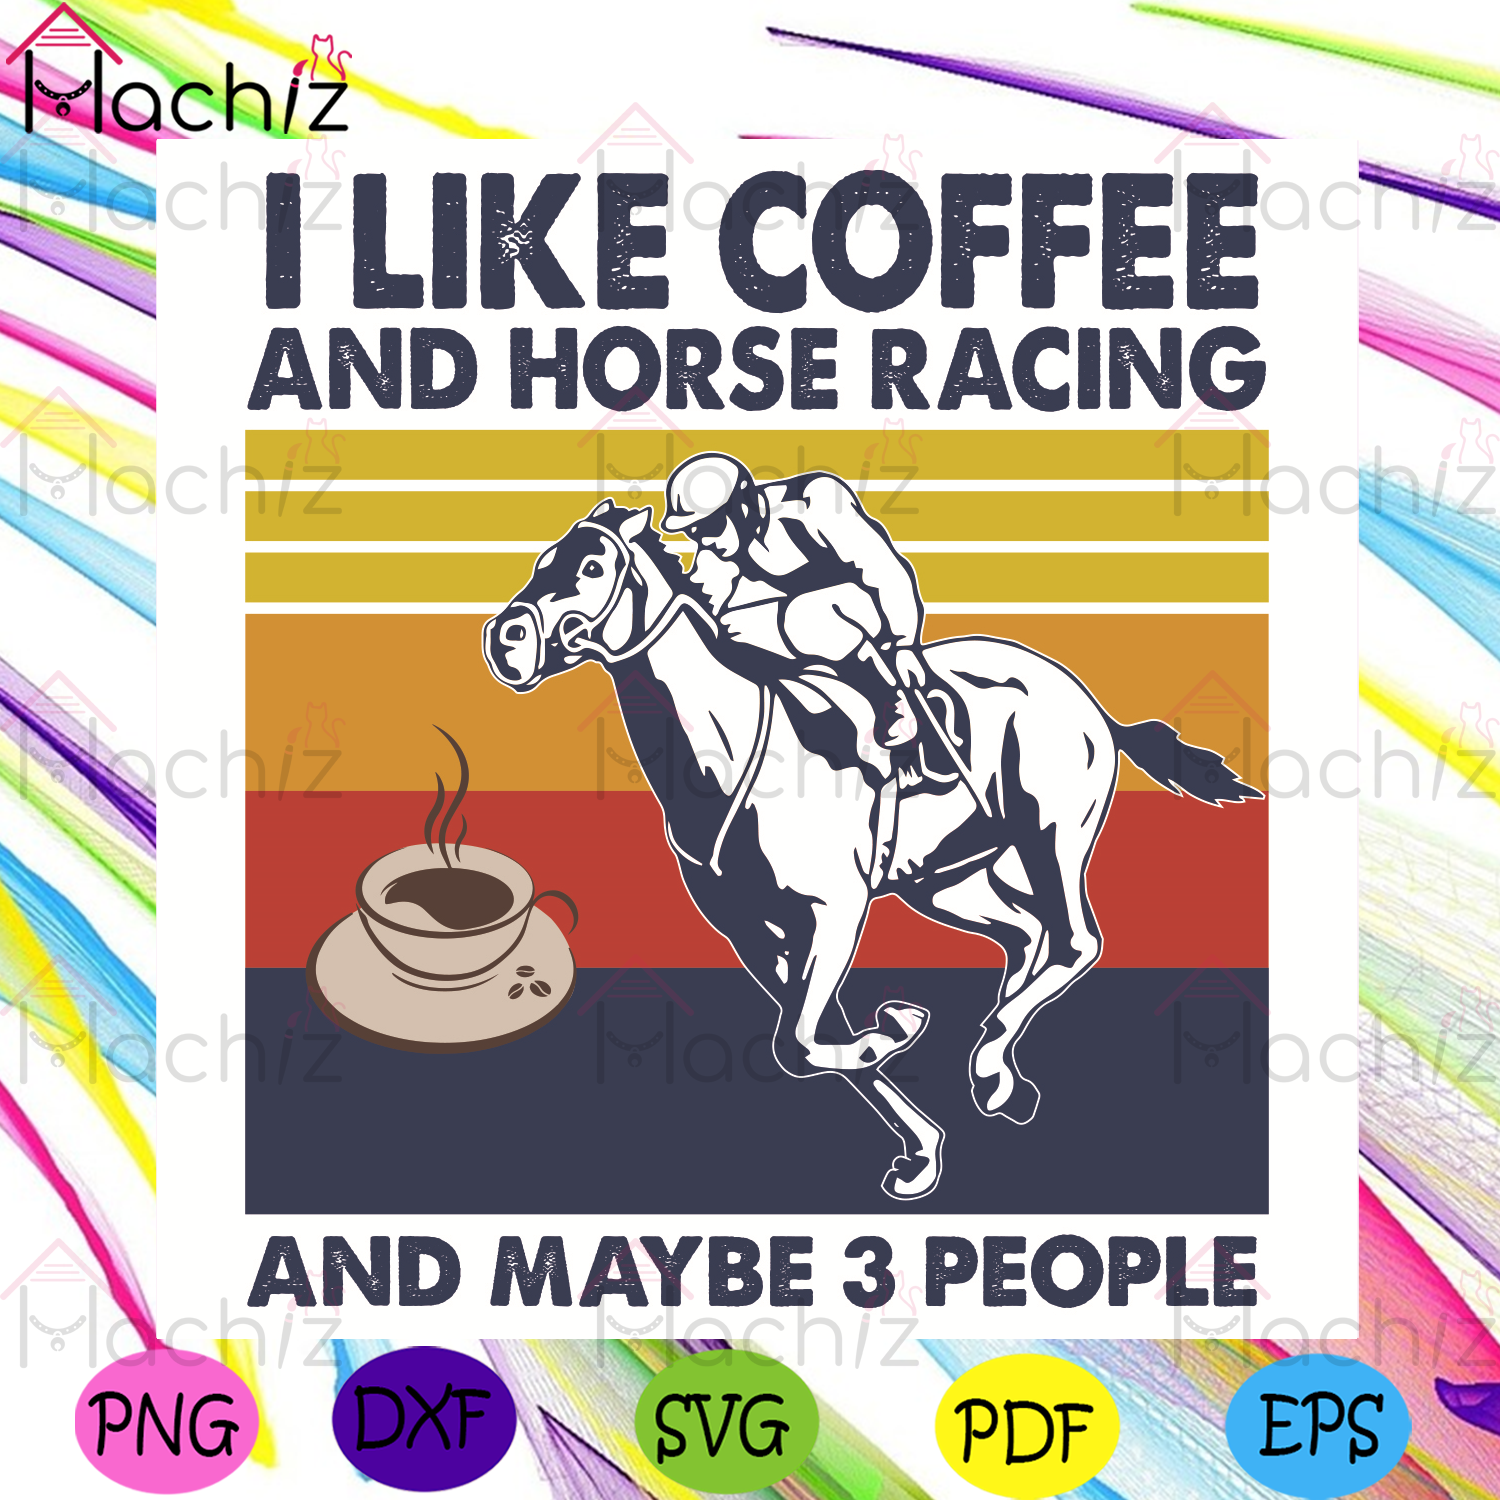 I Like Coffee And Horse Racing And Maybe 3 People Svg, Trending Svg, I Like Coffee Svg, Horse Racing Svg, Maybe 3 People Svg, Coffee Svg, Horse Svg, Coffee And Horse Racing Gift, Coffee And Horse Racing Shirt, Svg Cricut